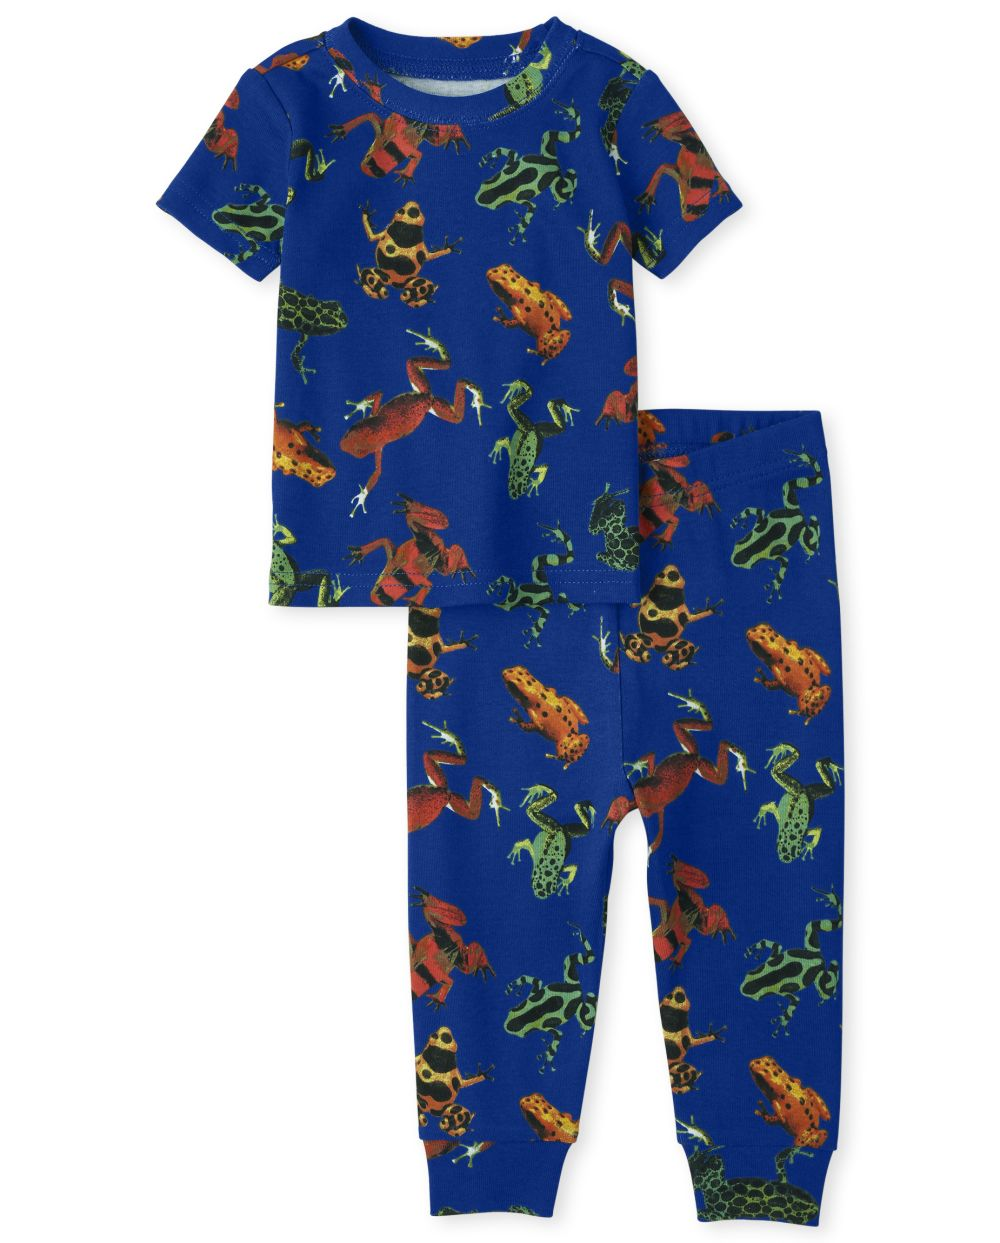 Baby And Toddler Boys Frog Snug Fit Cotton Pajamas - Blue